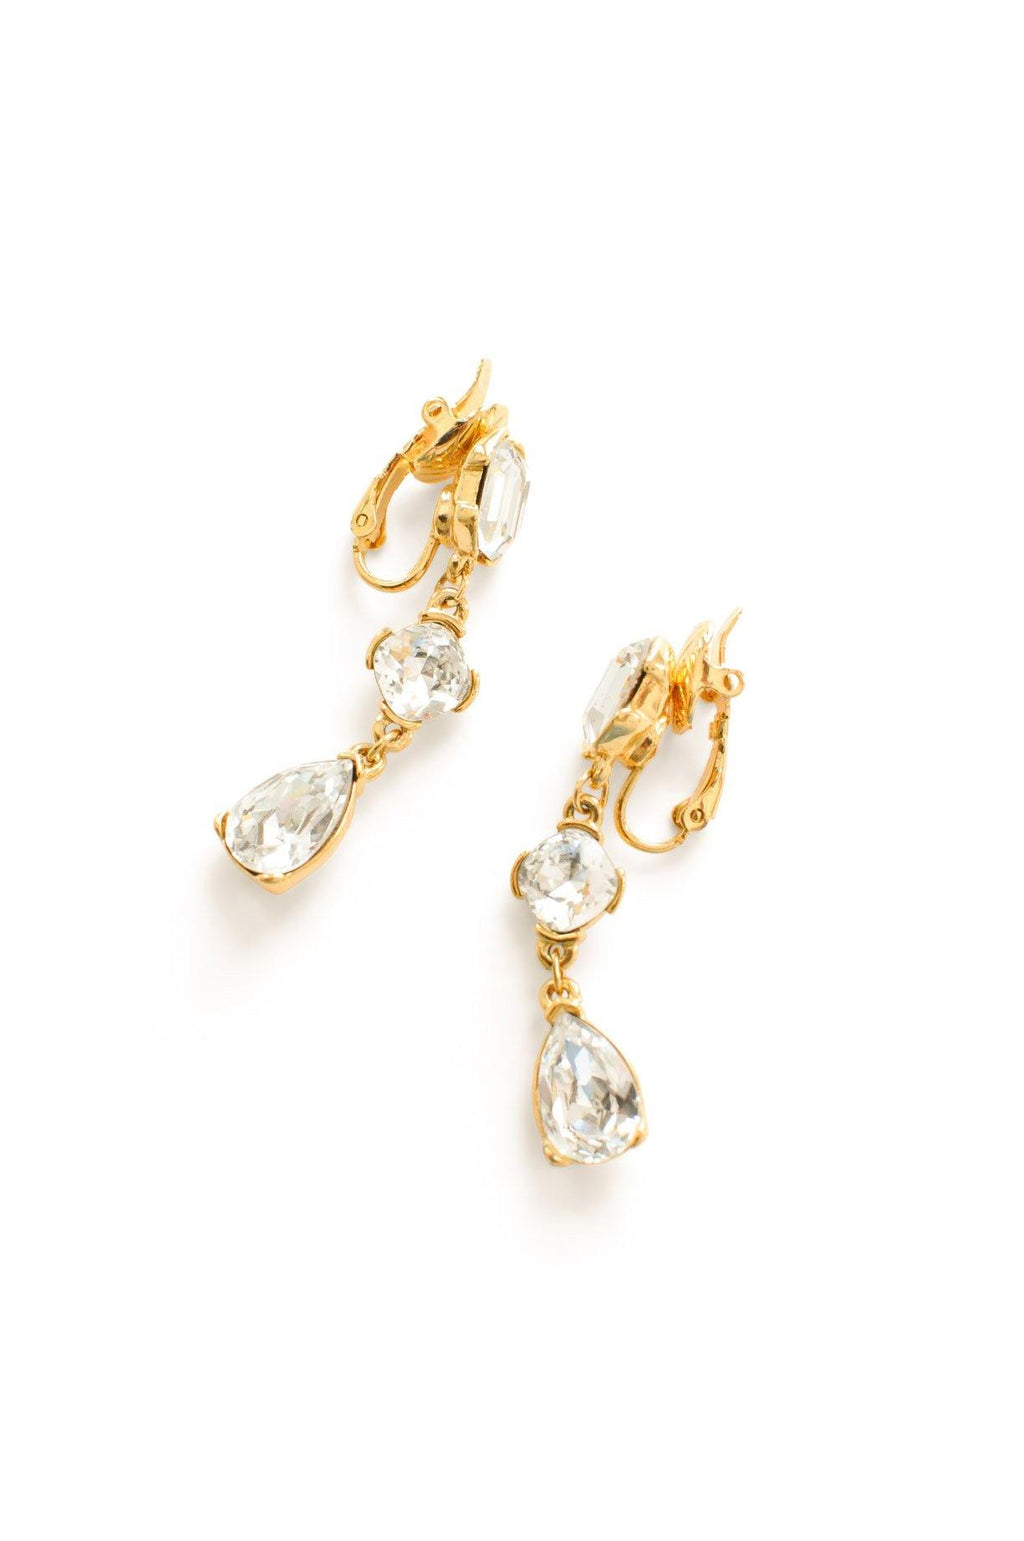 Rhinestone Strand Clip-on Earrings